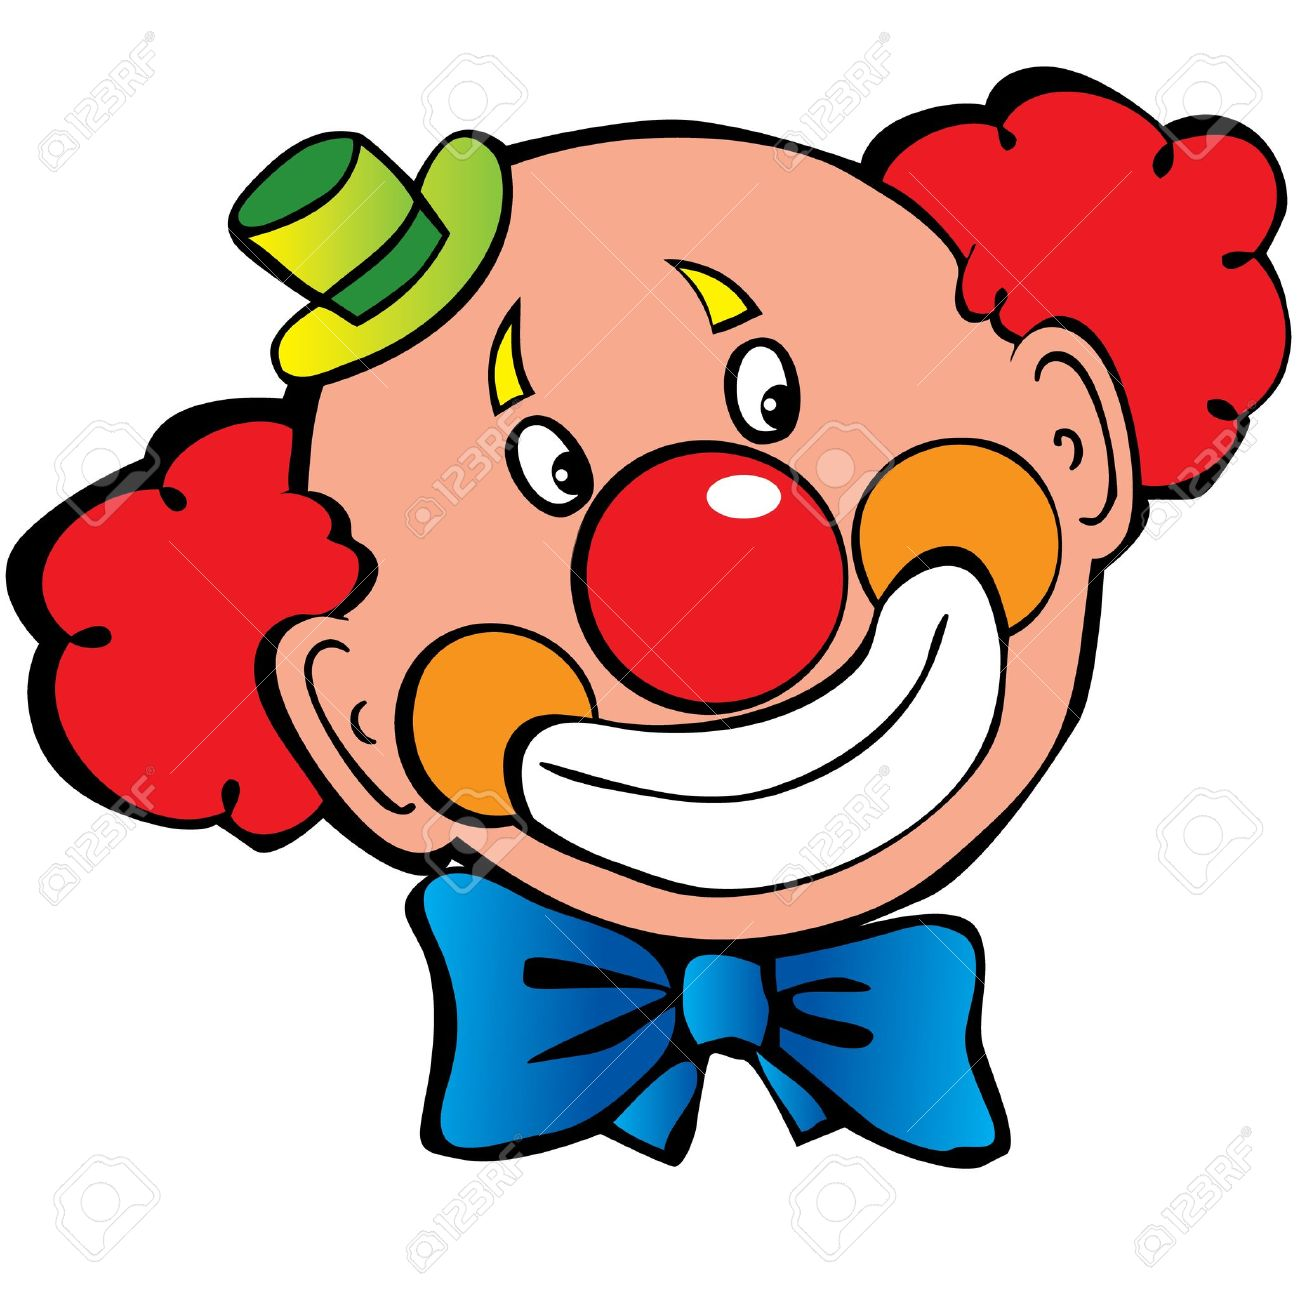 happy clown art illustration on a white background royalty free rh 123rf com clown clip art with balloons clowns clipart